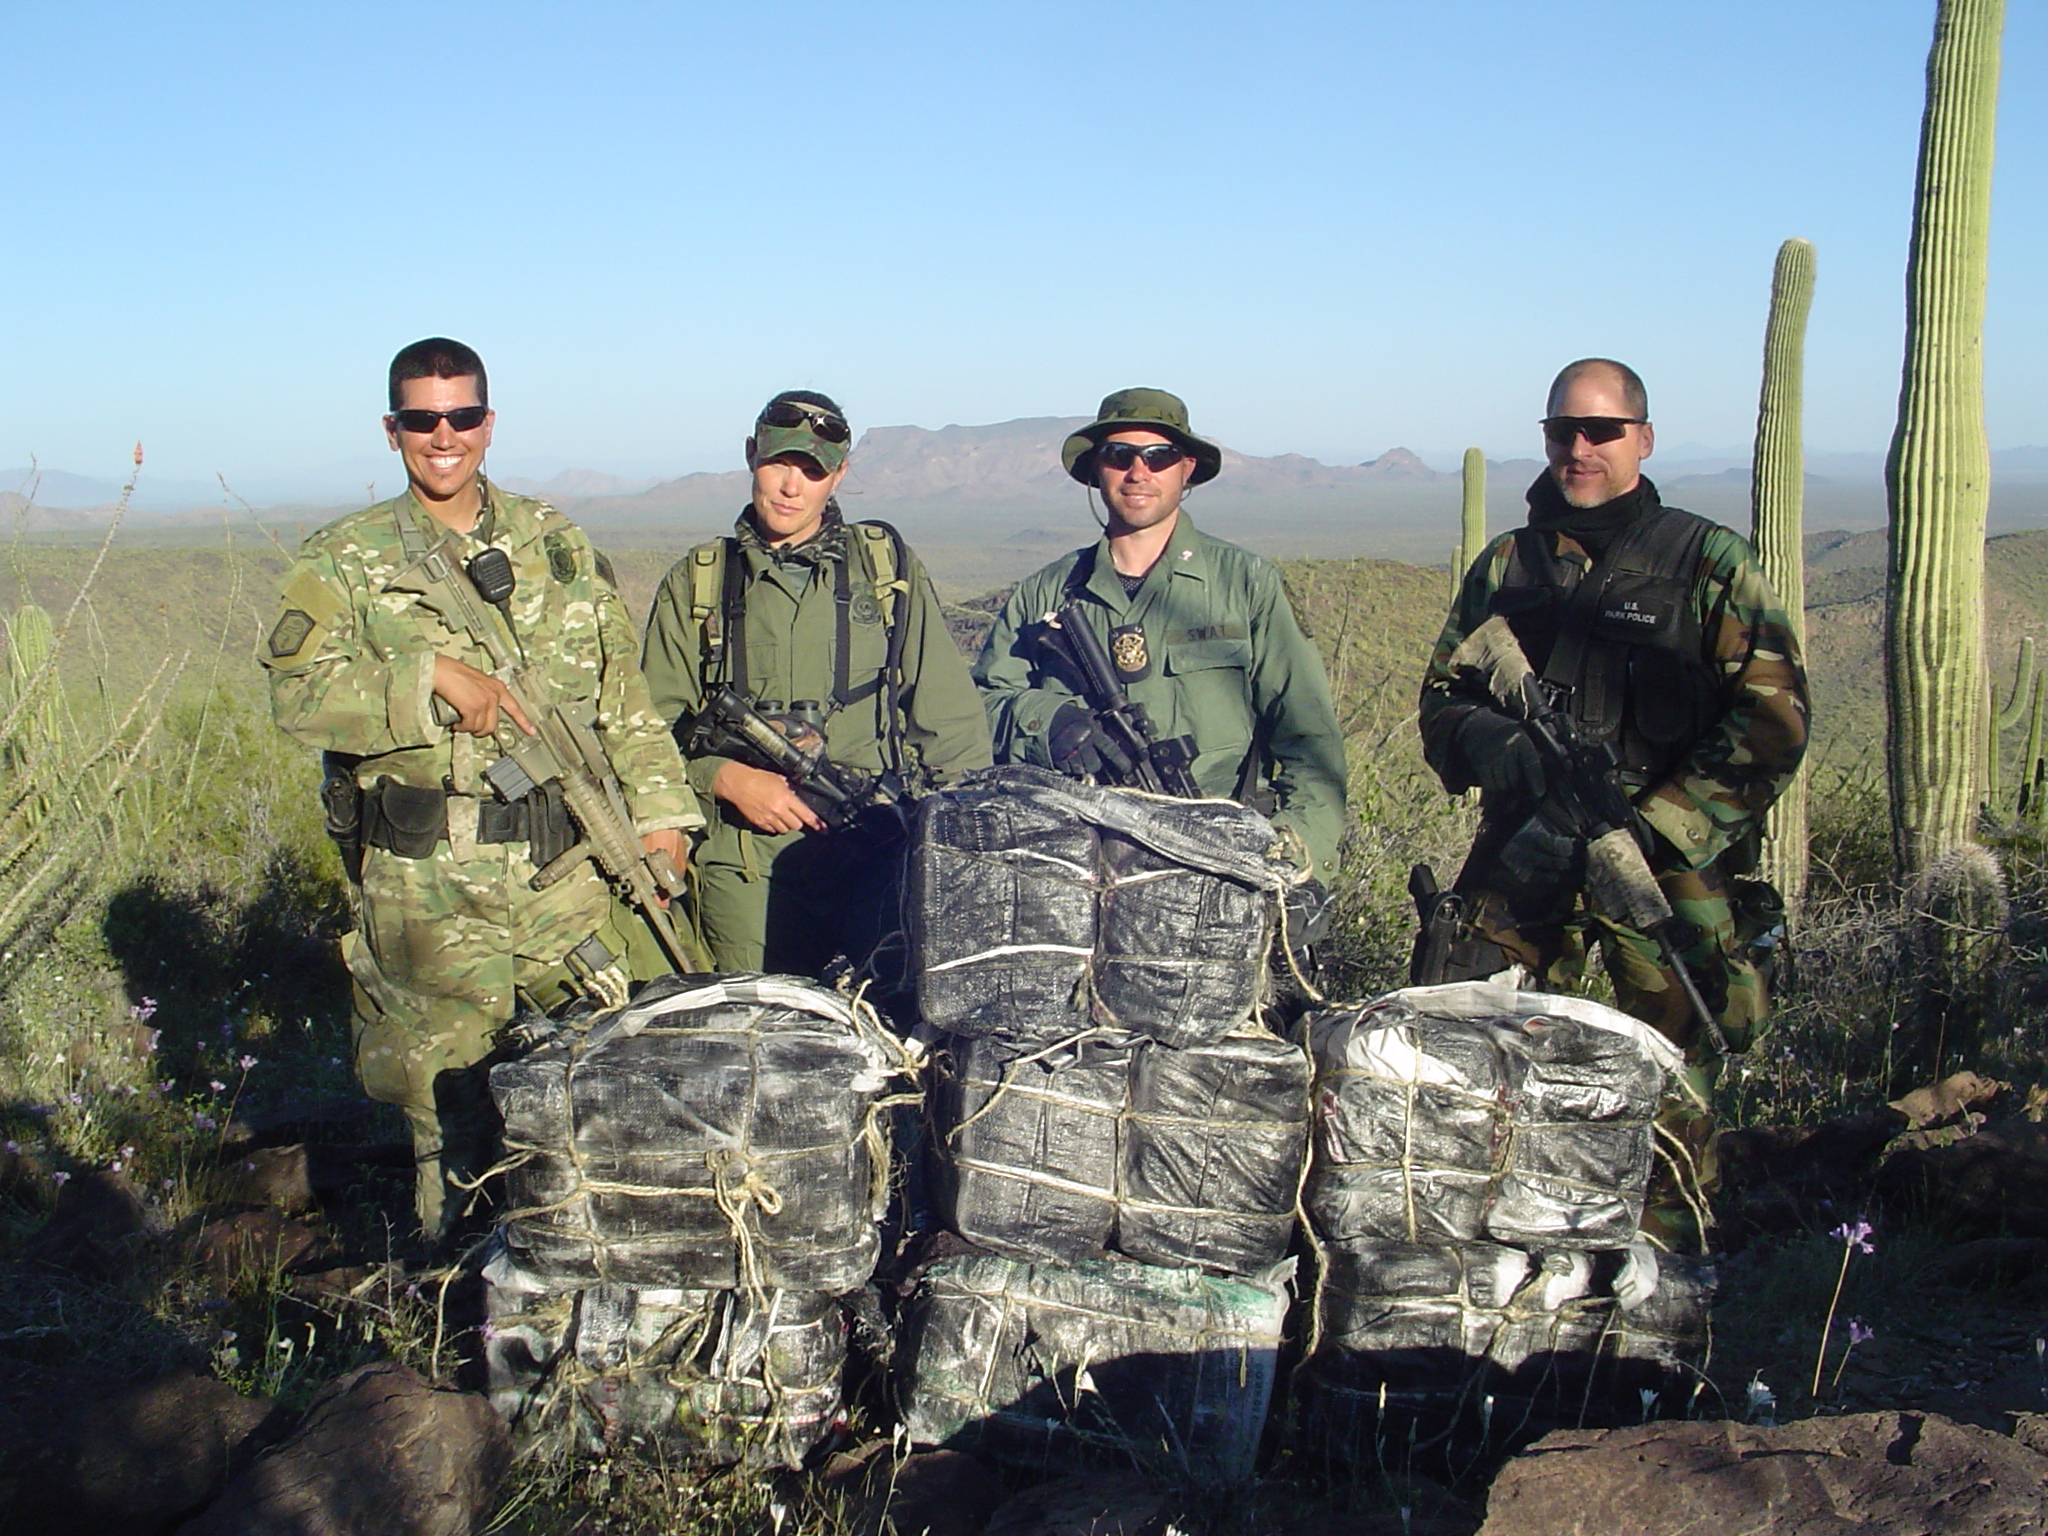 National Park Rangers defeating drug smugglers